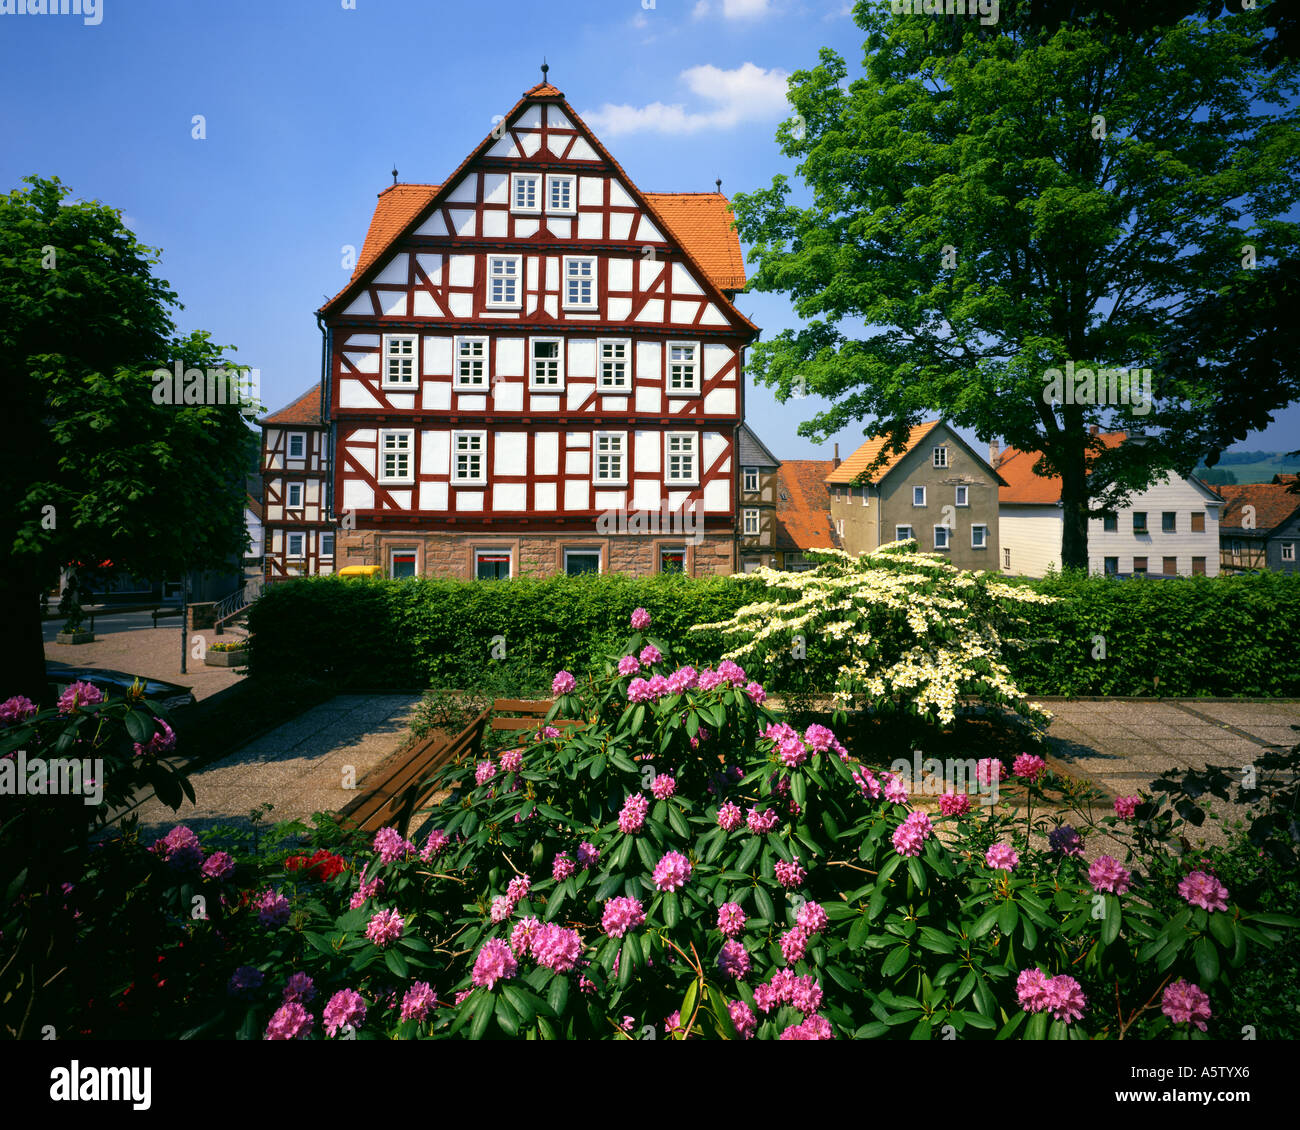 DE - HESSEN: Town centre at Wetter - Stock Image